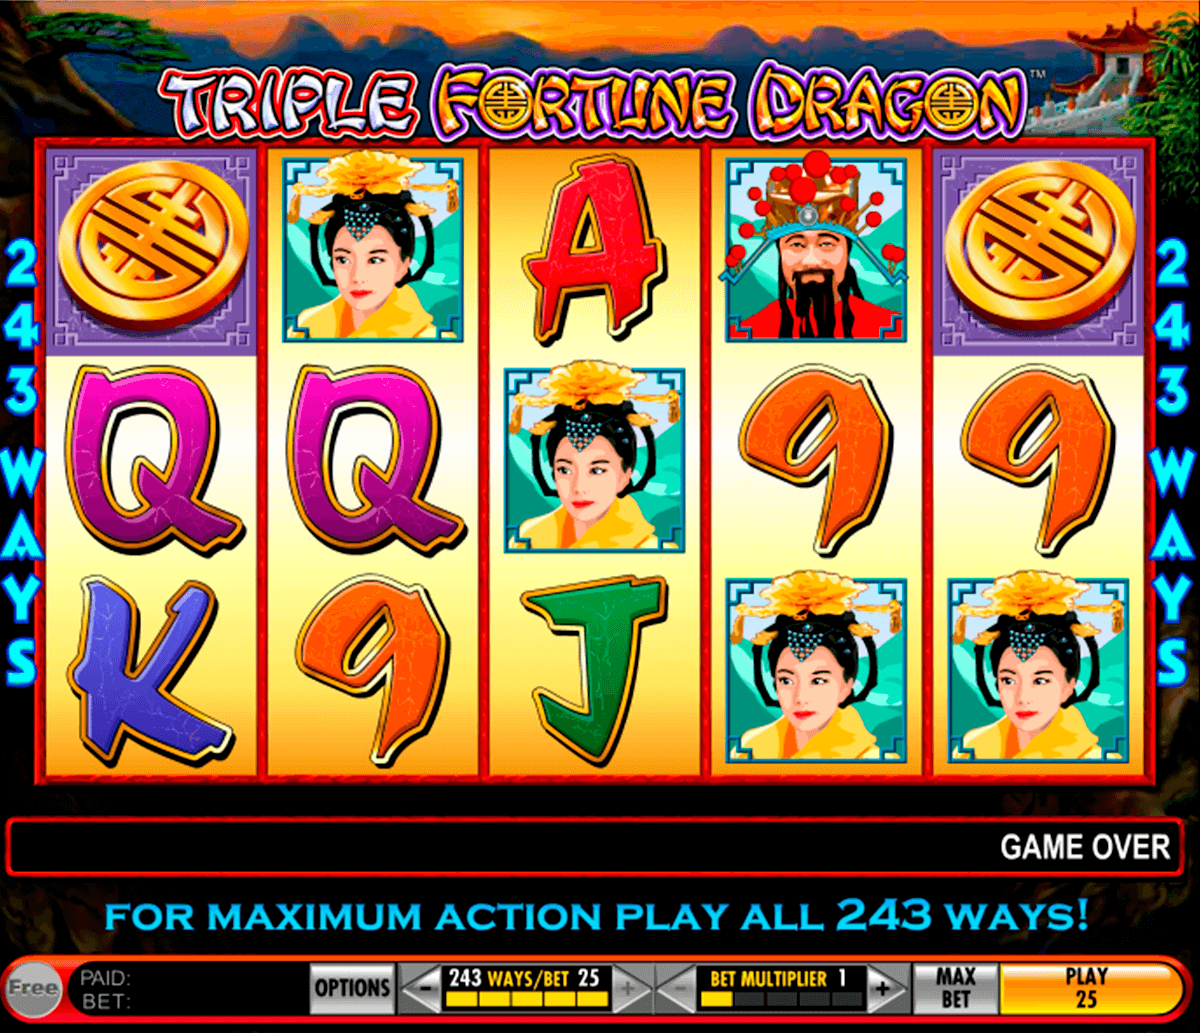 triple fortune dragon igt casino slot spel